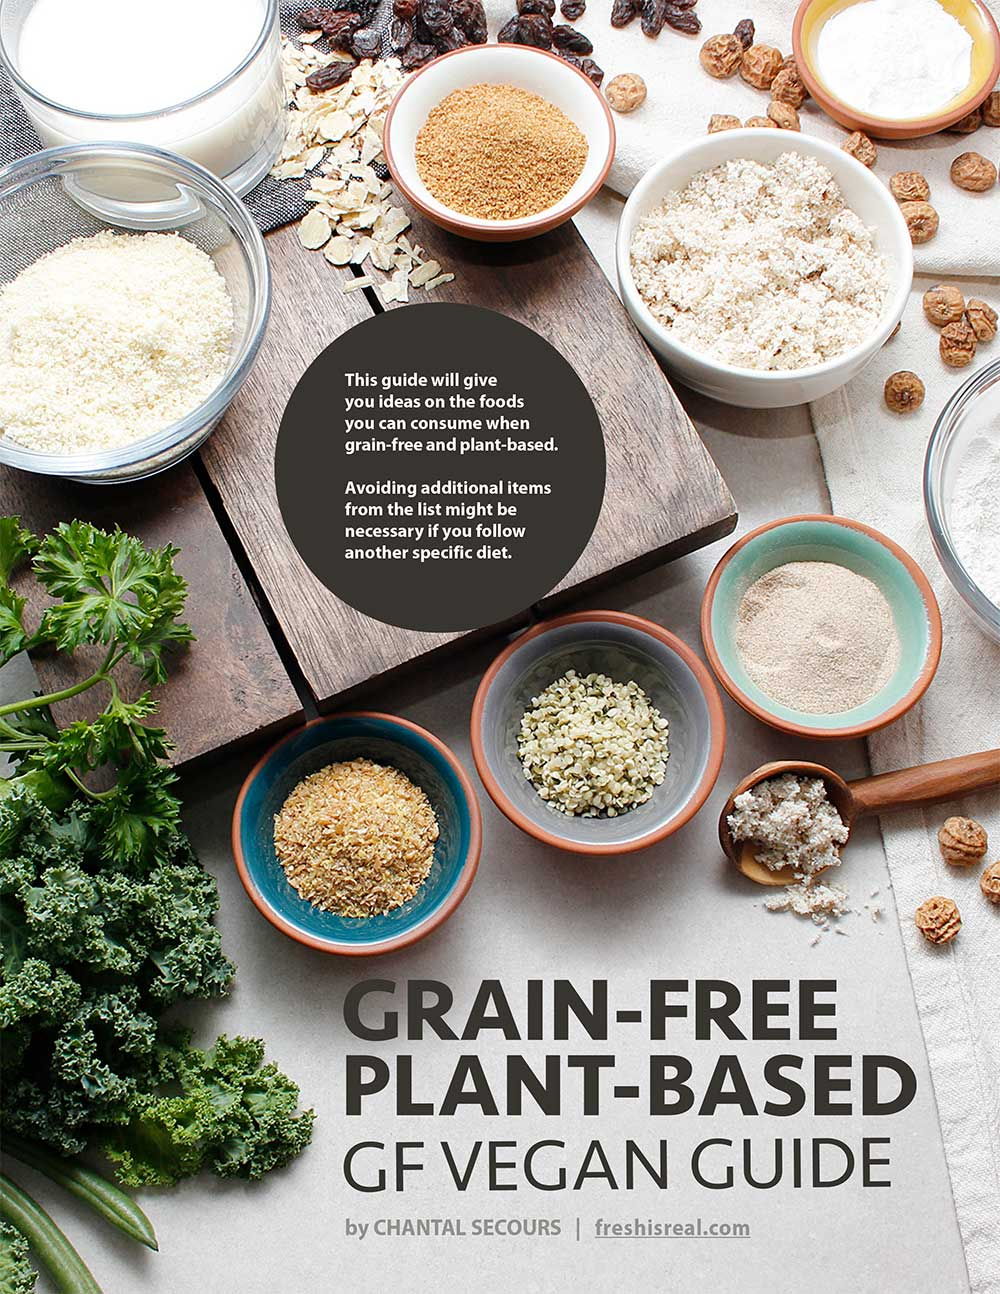 Cover of Grain-Free Plant-Based Guide by Chantal at freshisreal.com